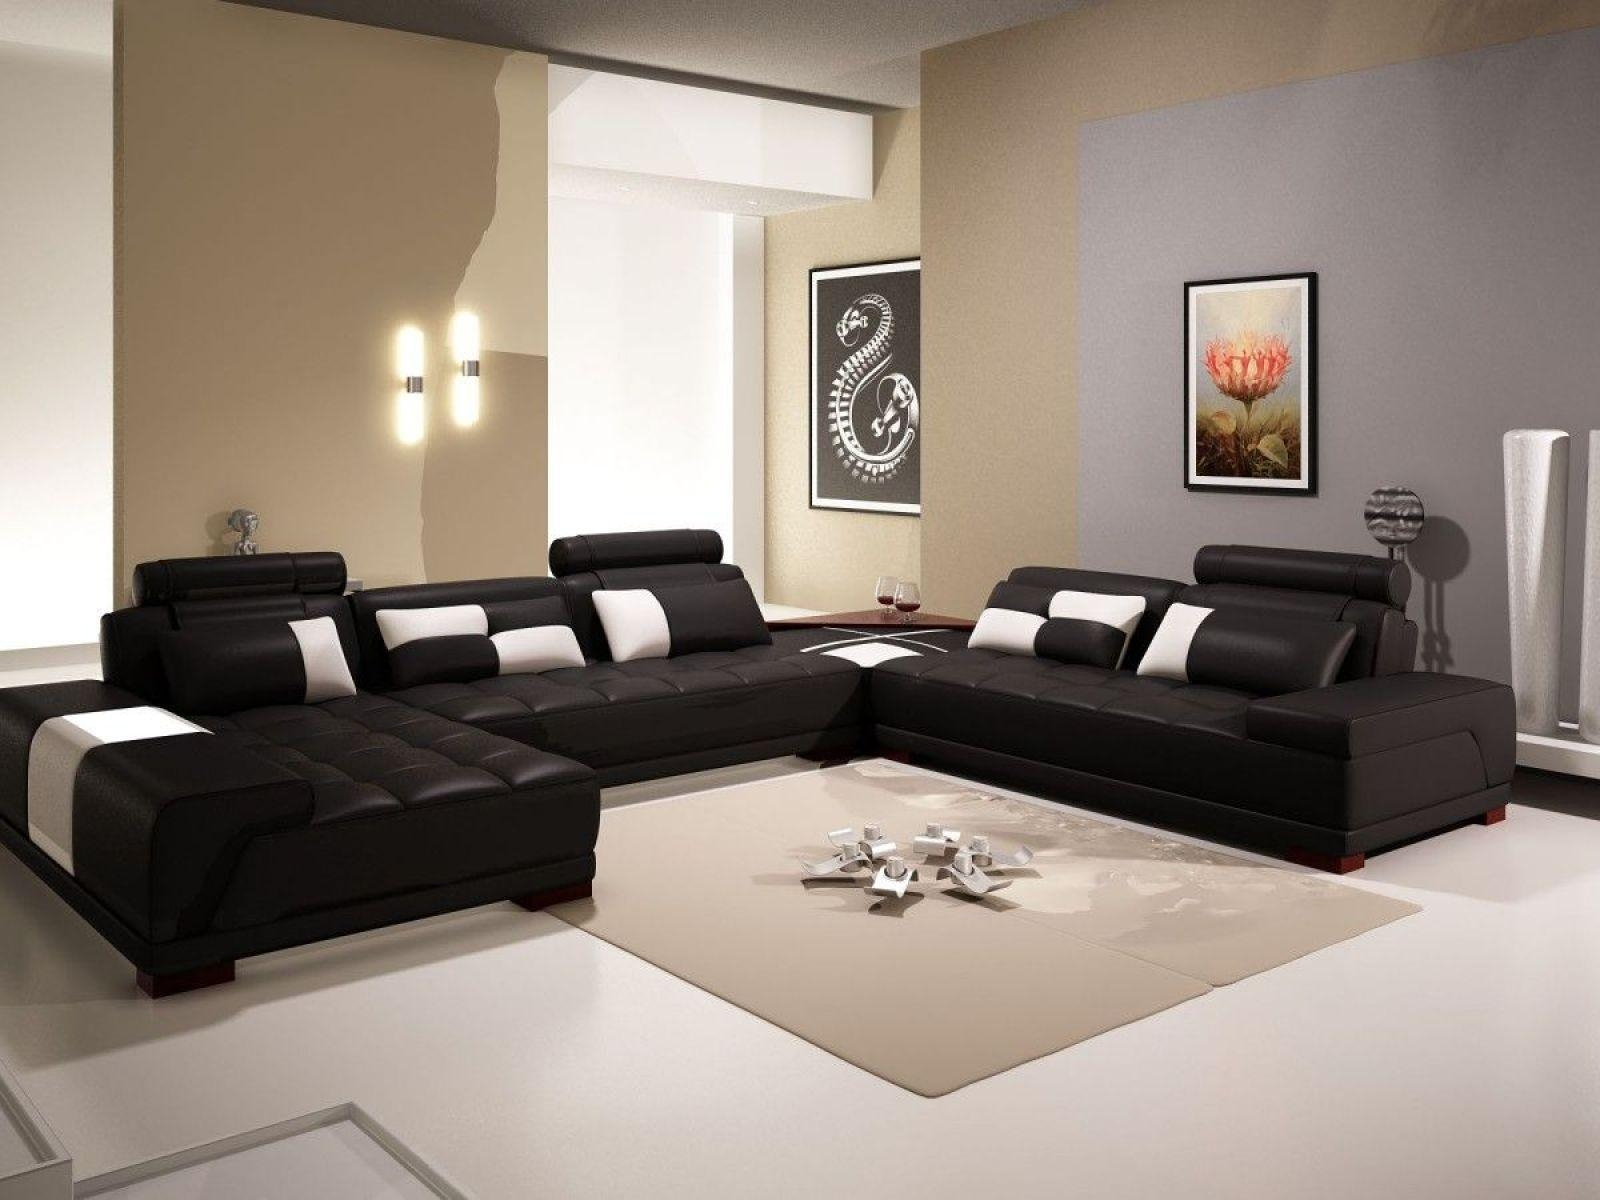 black white living room furniture 21 inspirations white and black sofas sofa ideas 21737